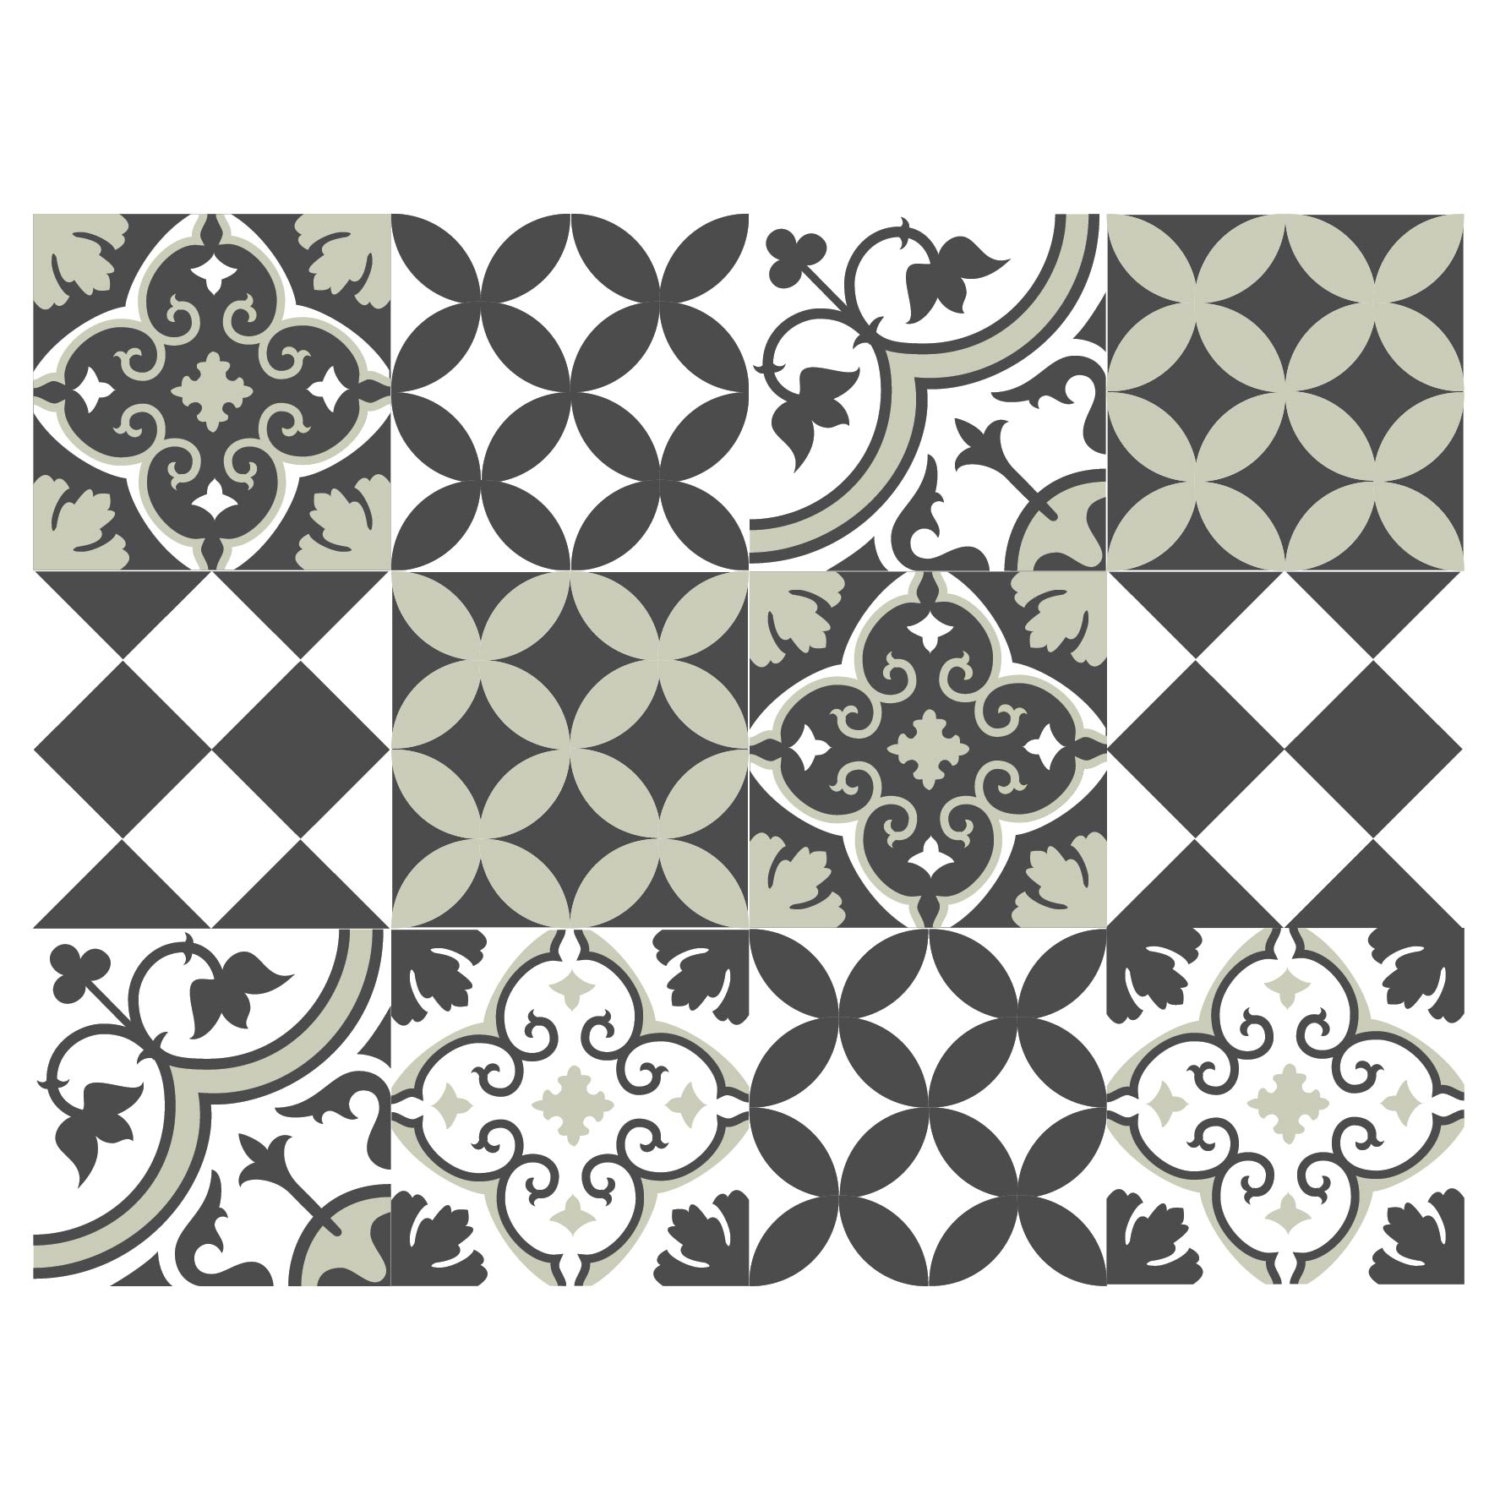 mix-tile-decals-kitchenbathroom-tiles-vinyl-floor-tiles-free-shipping-design-312-5897aec84.jpg